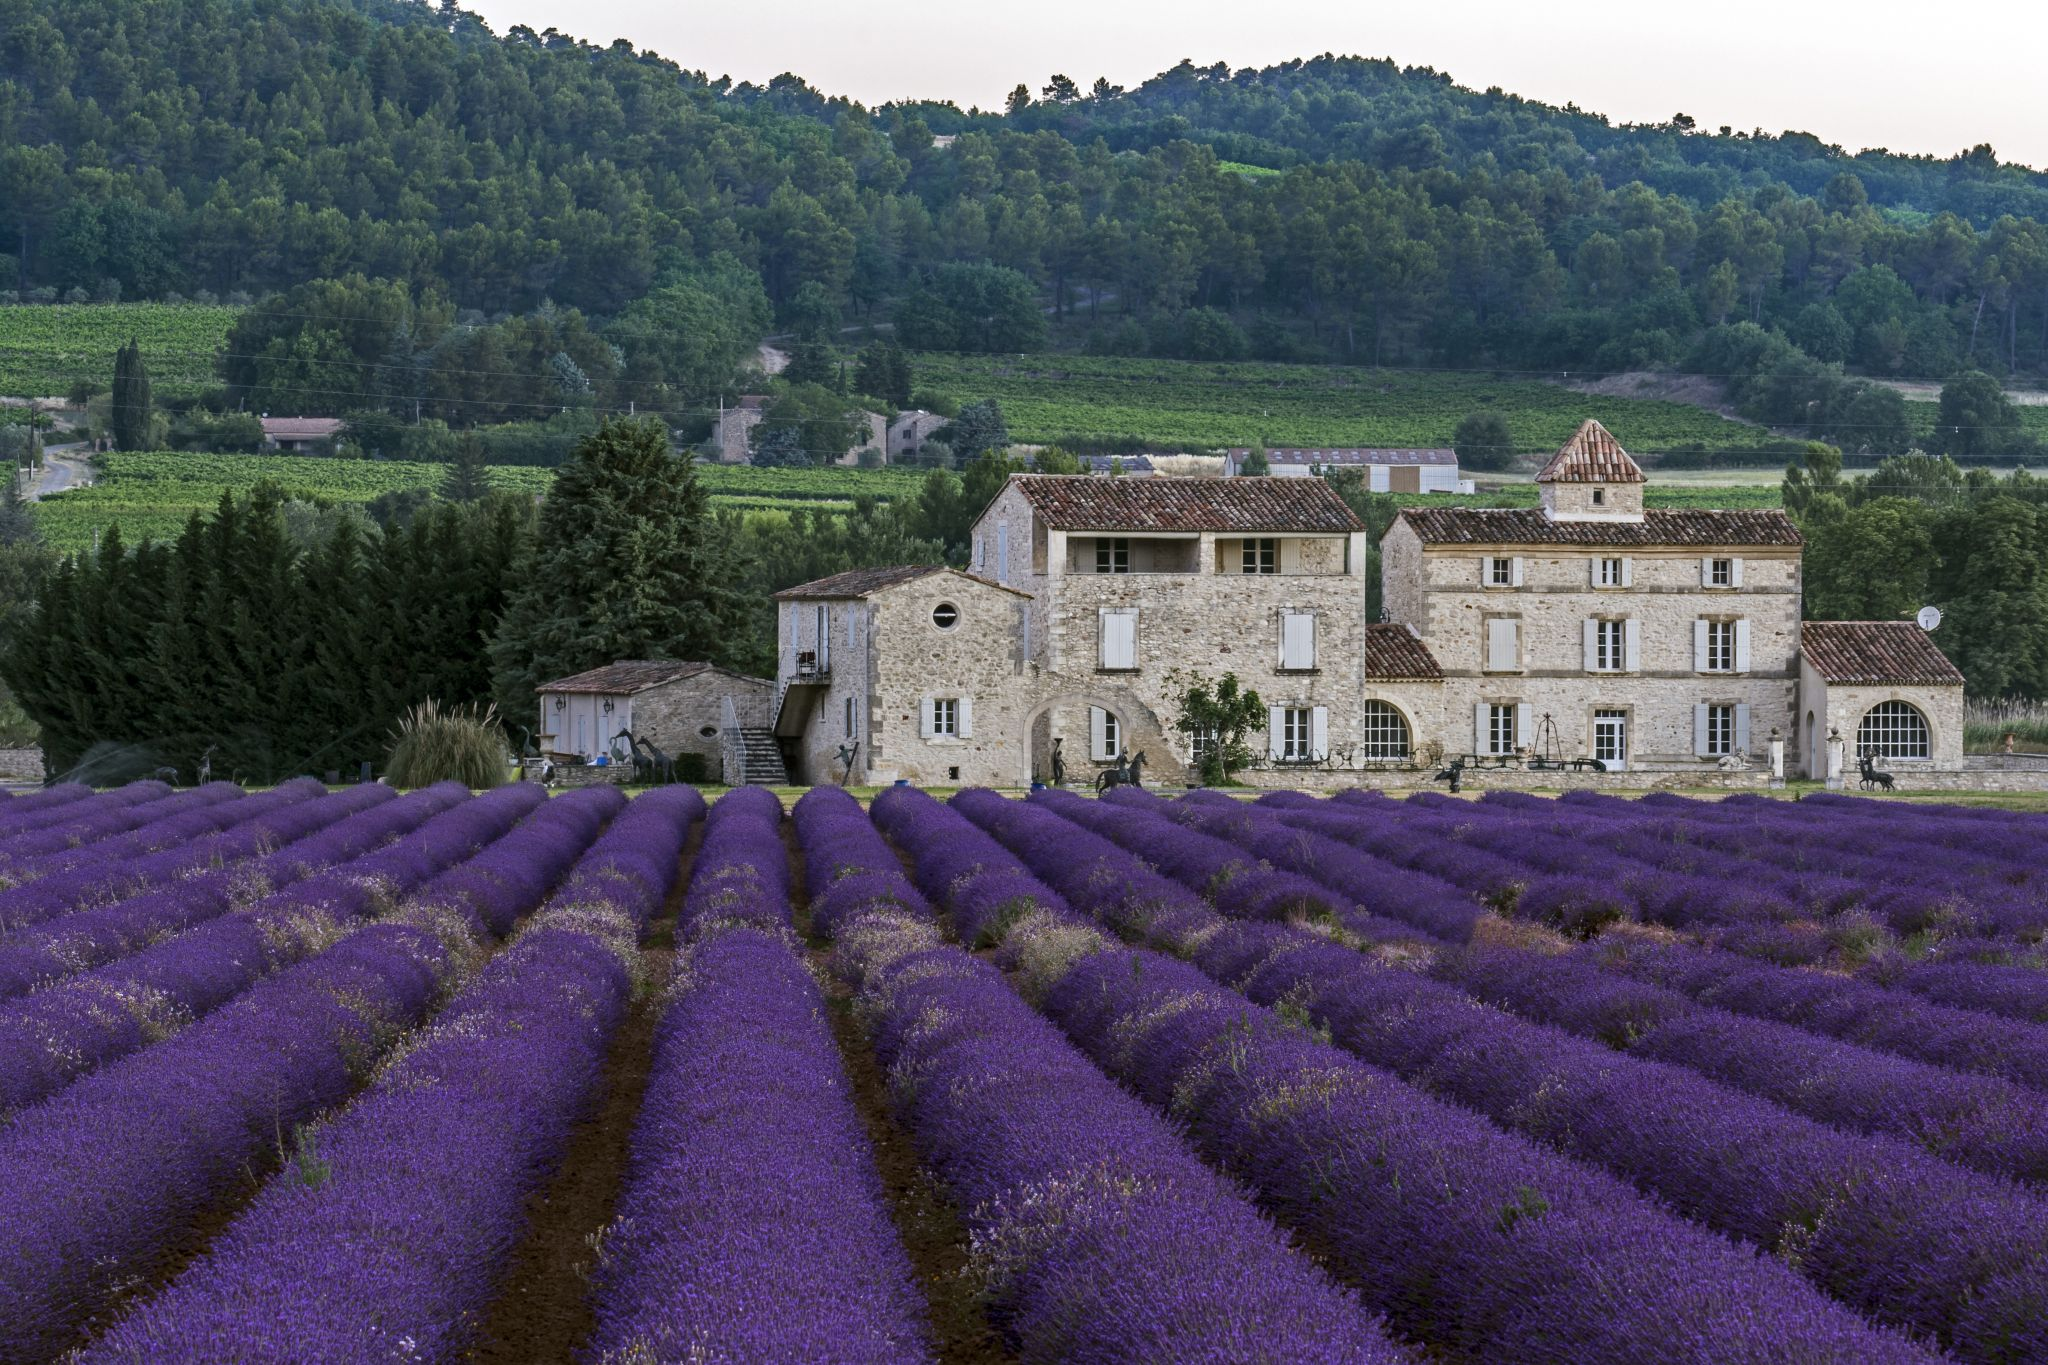 Lavender Fields and the Farmhouse, France